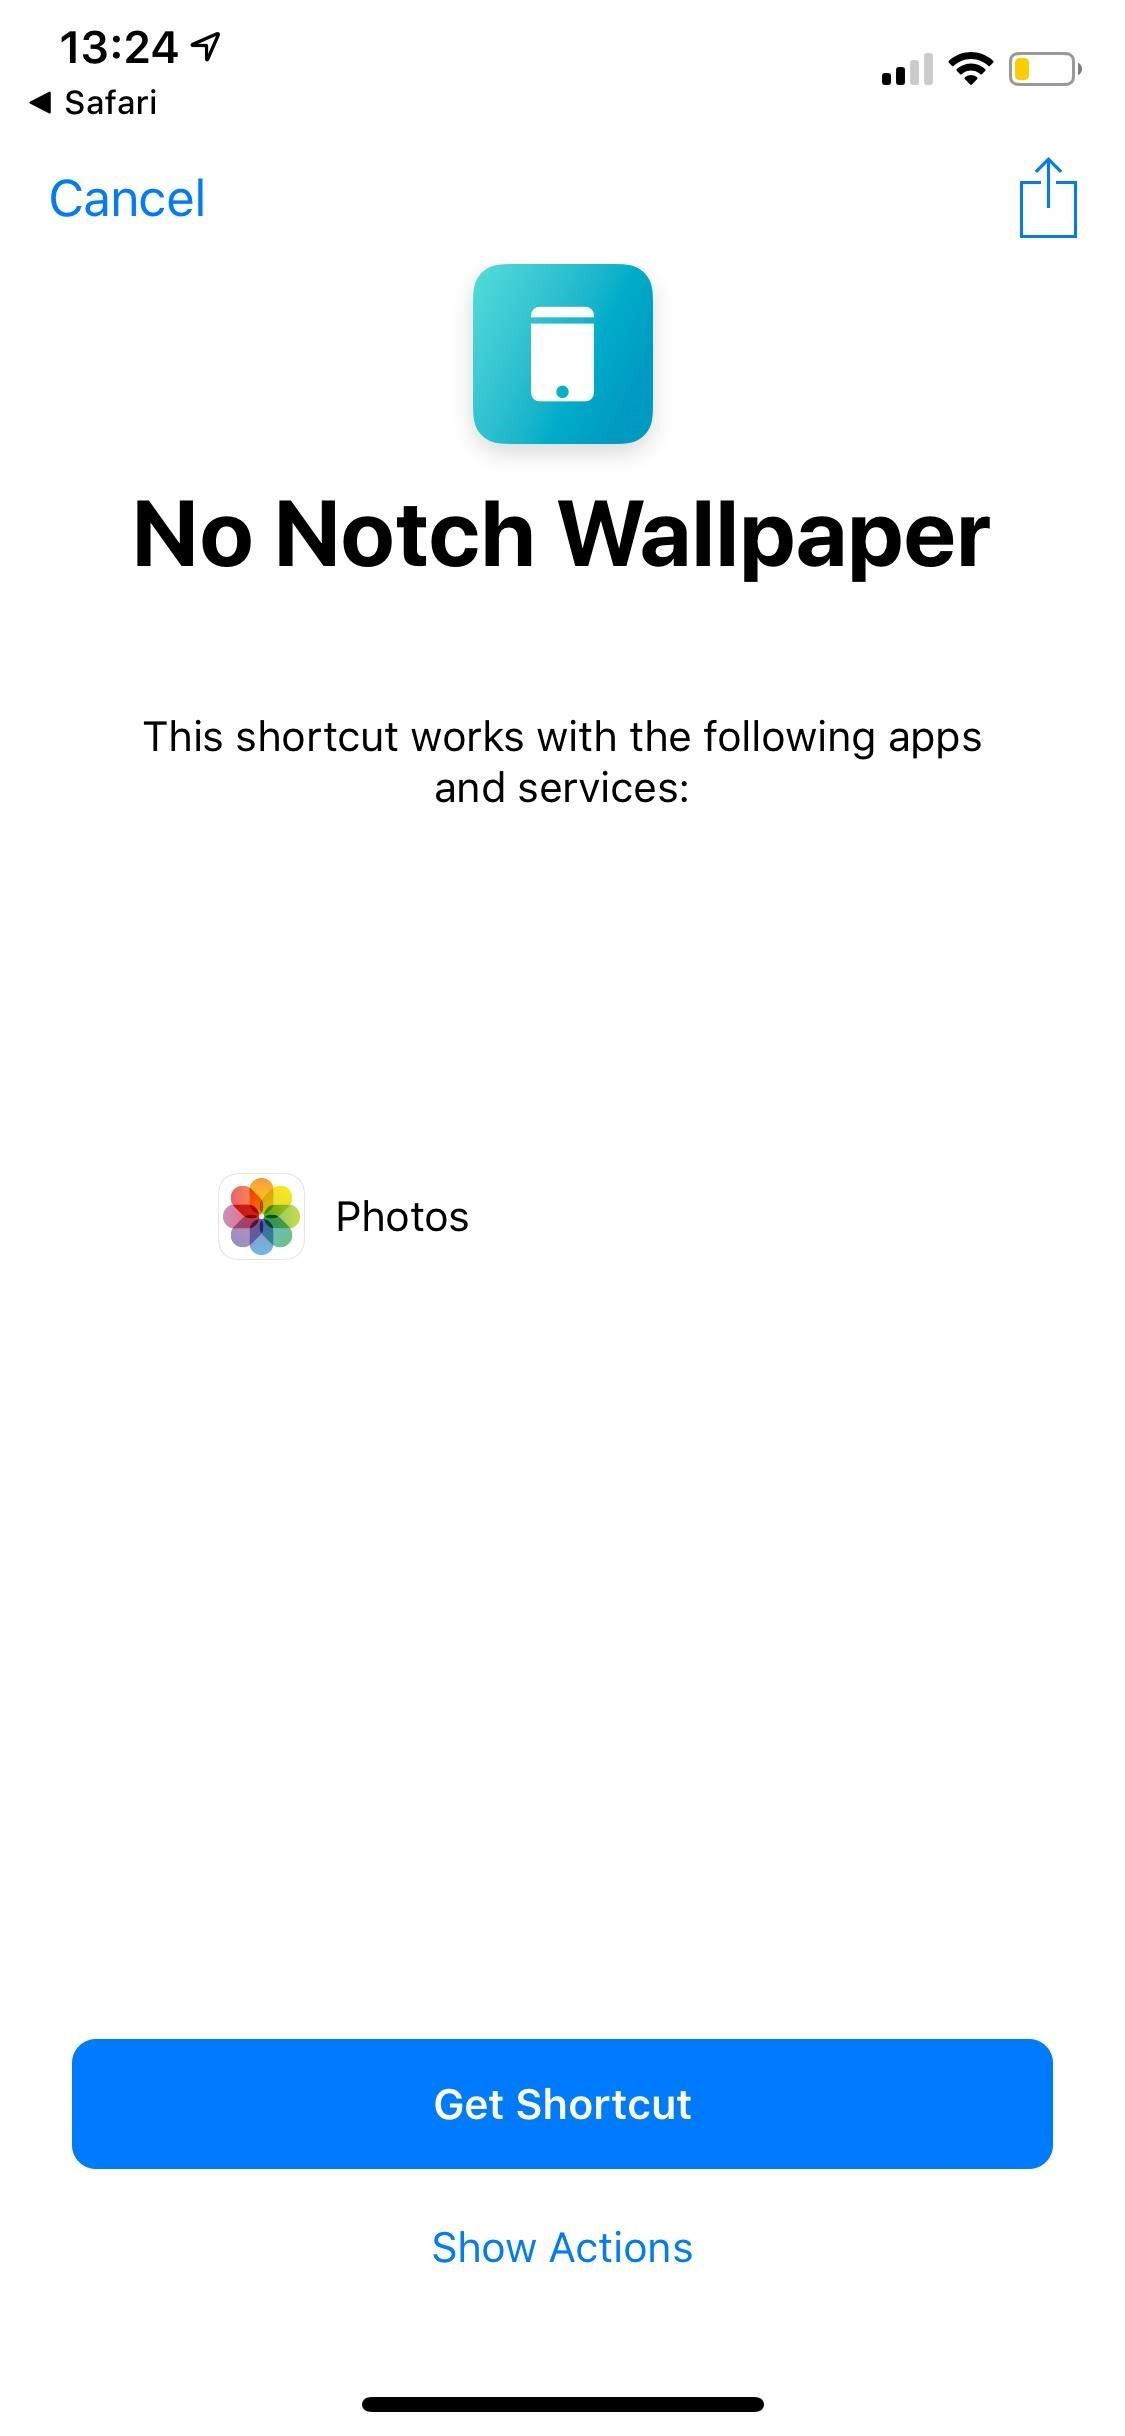 Use This Shortcut to Turn Any Photo into a Notch-Hiding Wallpaper on Your iPhone